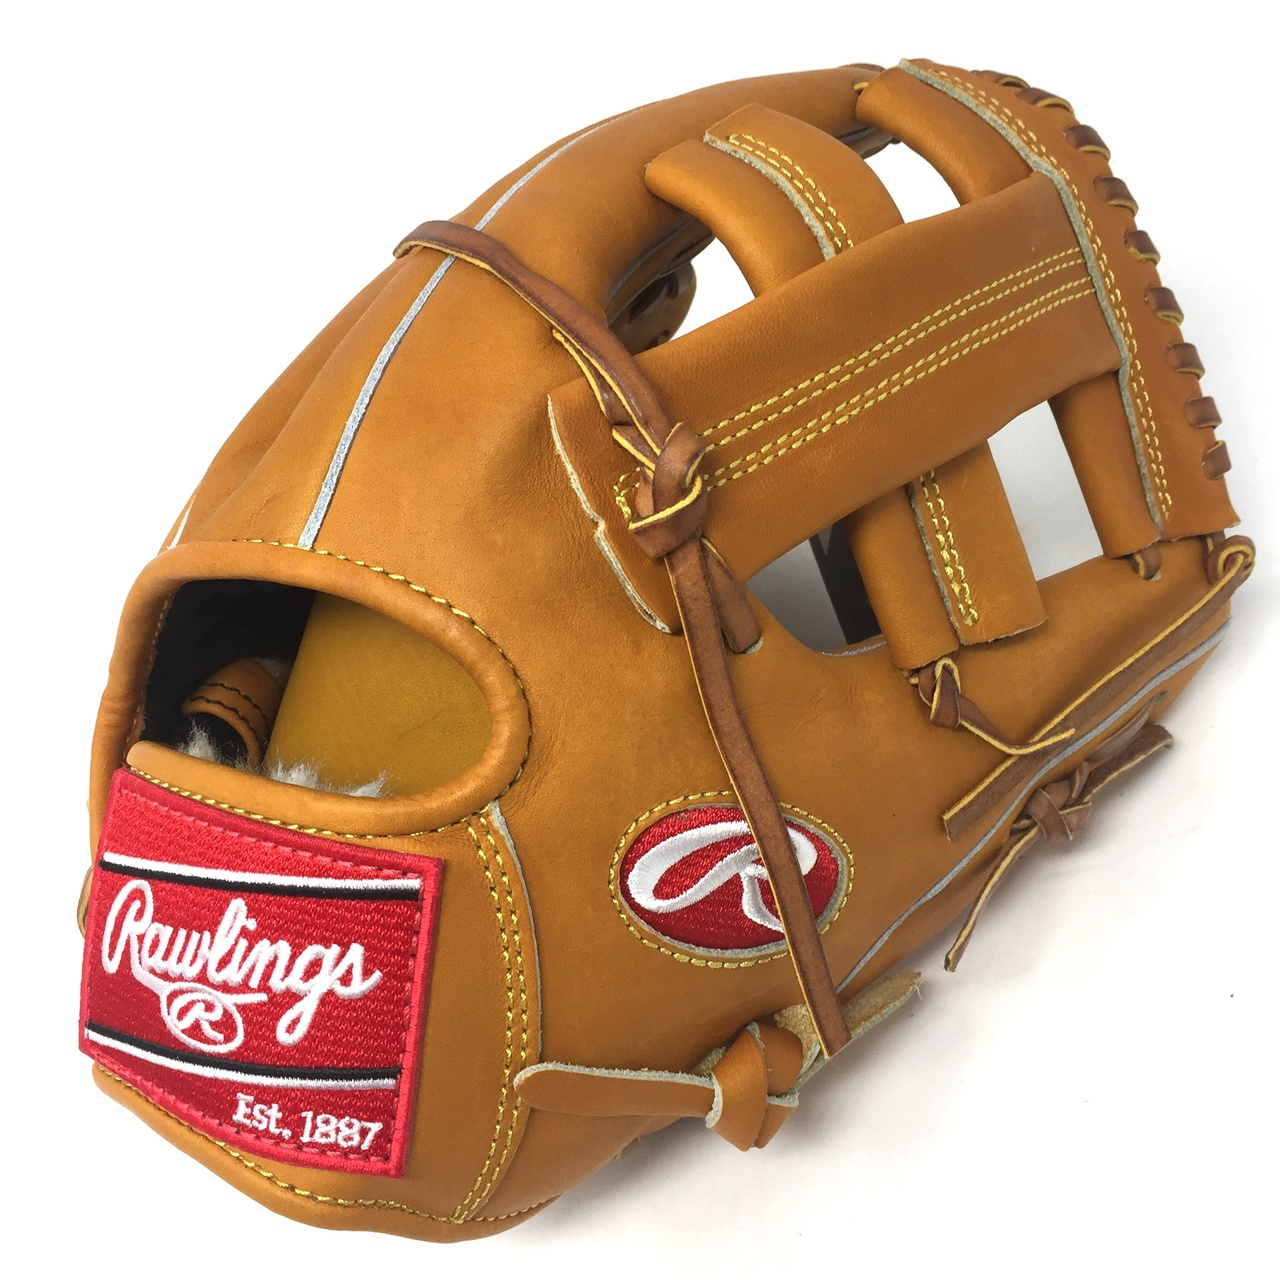 Made with premium Japanese tanned leather this Heart of the Hide baseball glove from Rawlings features a conventional back and a single post web. This popular 11.5 infield model is primarily used at the short stop position at the Pro Level but also it a great size for the 3rd base position. Worn by countless Rawlings Gold Glove Award winners since 1958, the Heart of the Hide glove line set the standard by which fielder's glove are judged today. This new limited edition series features the best pro patterns and the highest-quality craftsmanship in the world. This series is designed to provide elite players with the pro-style glove they need to make their mark in the field.